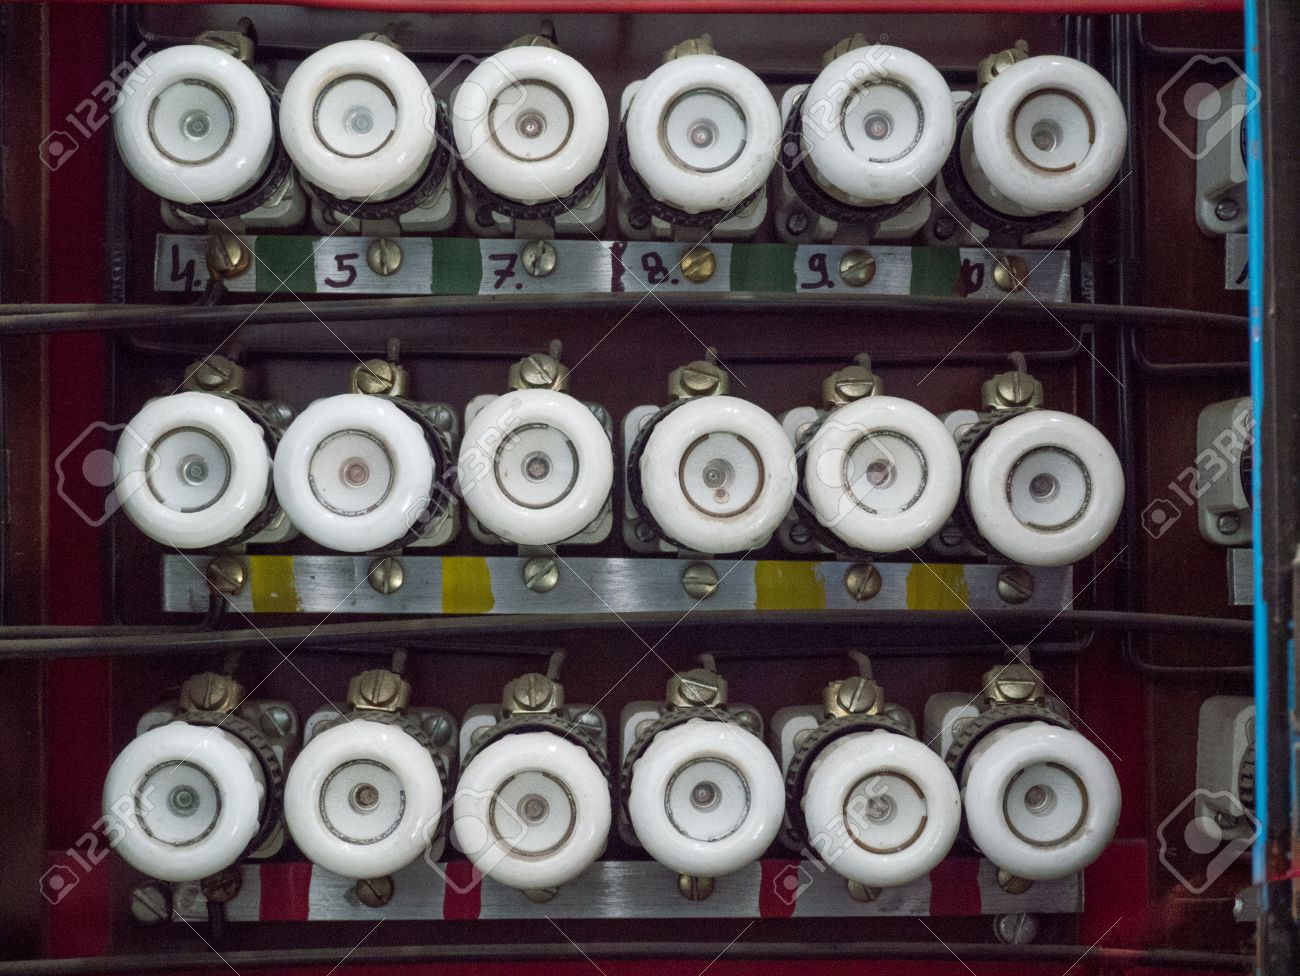 32788929 old fuse box Stock Photo old fuse box stock photo, picture and royalty free image image  at edmiracle.co